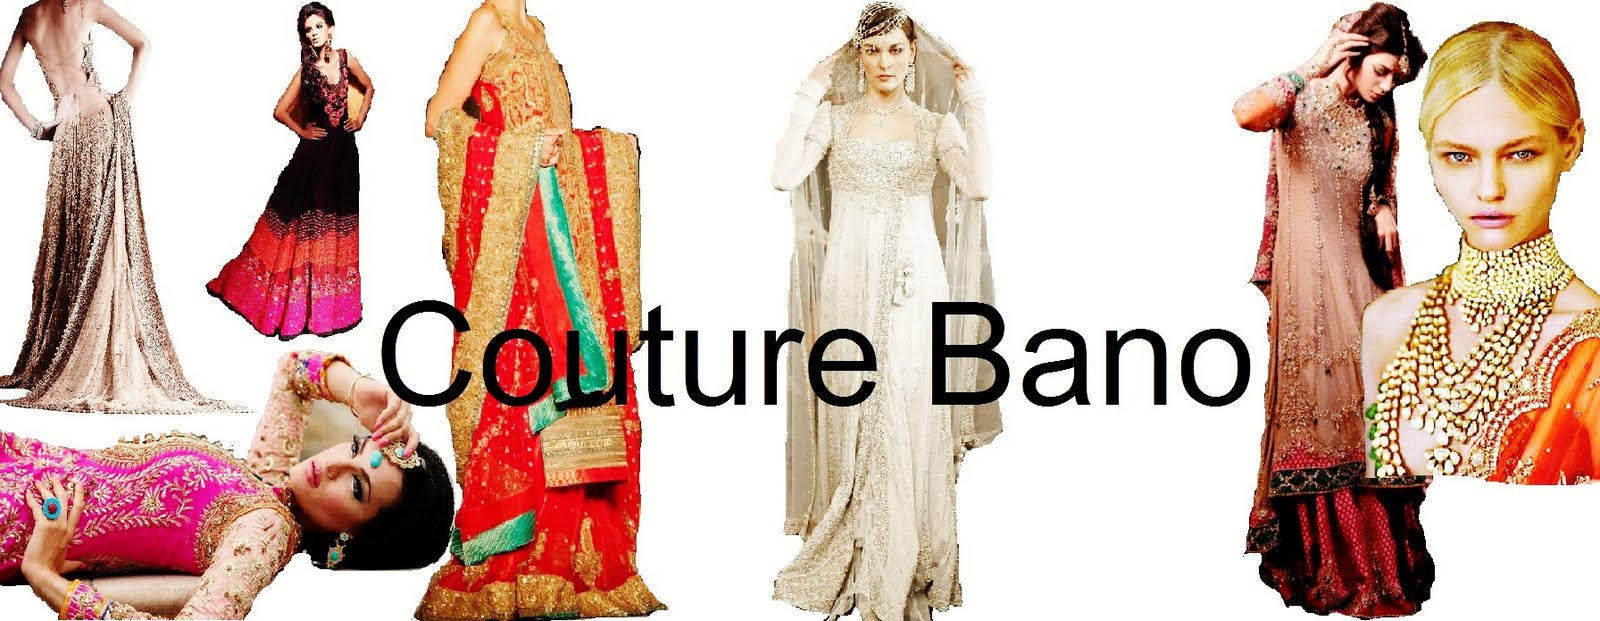 Couture Bano